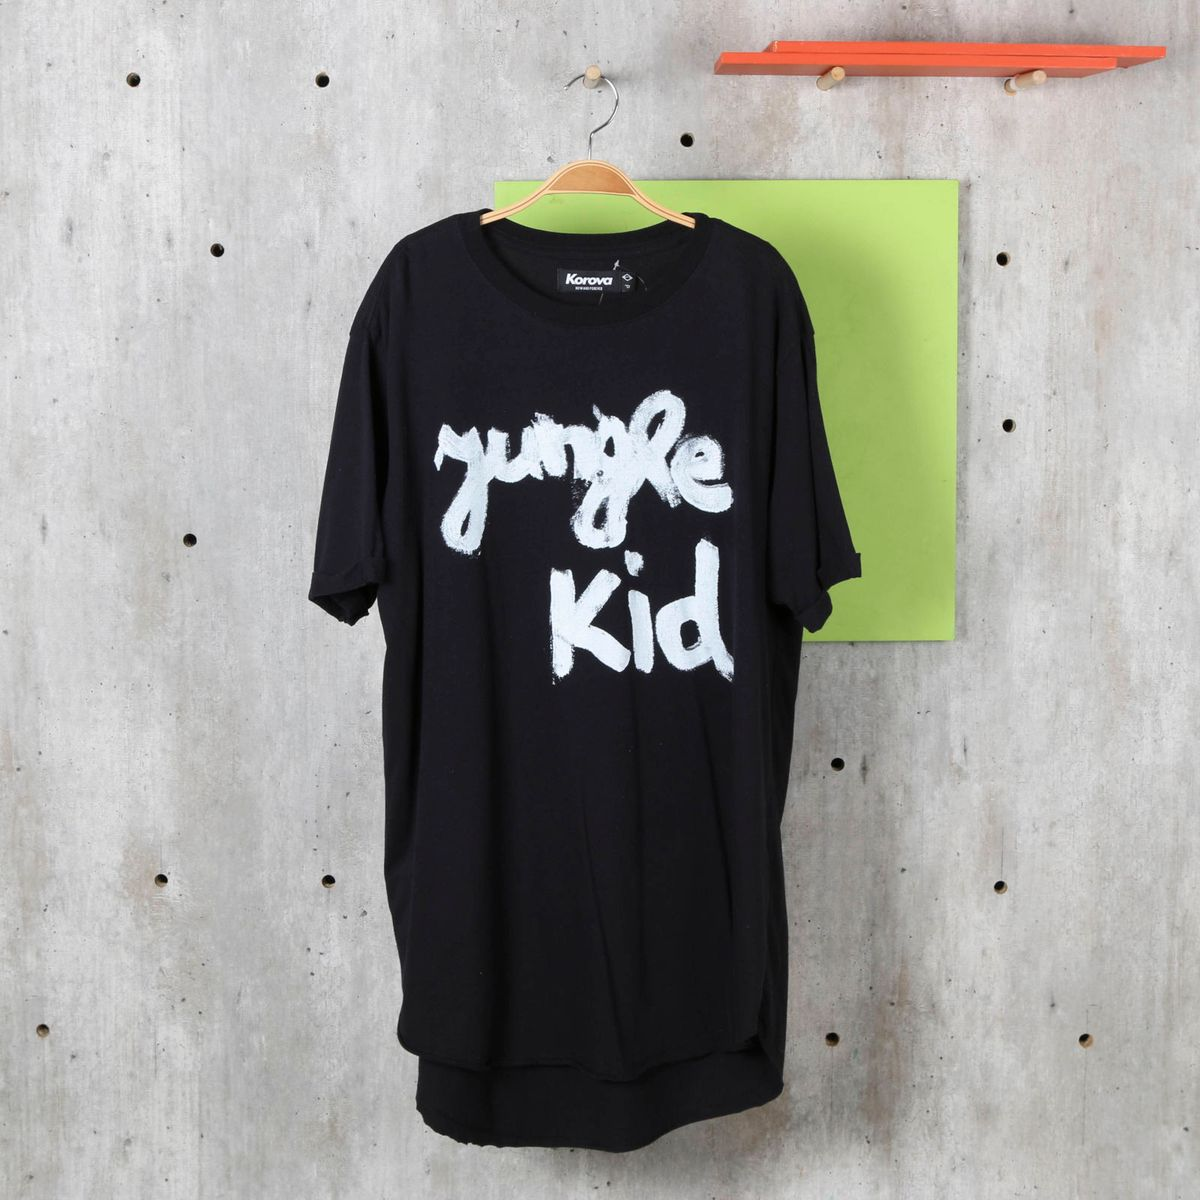 camiseta korova jungle kid - camisetas korova